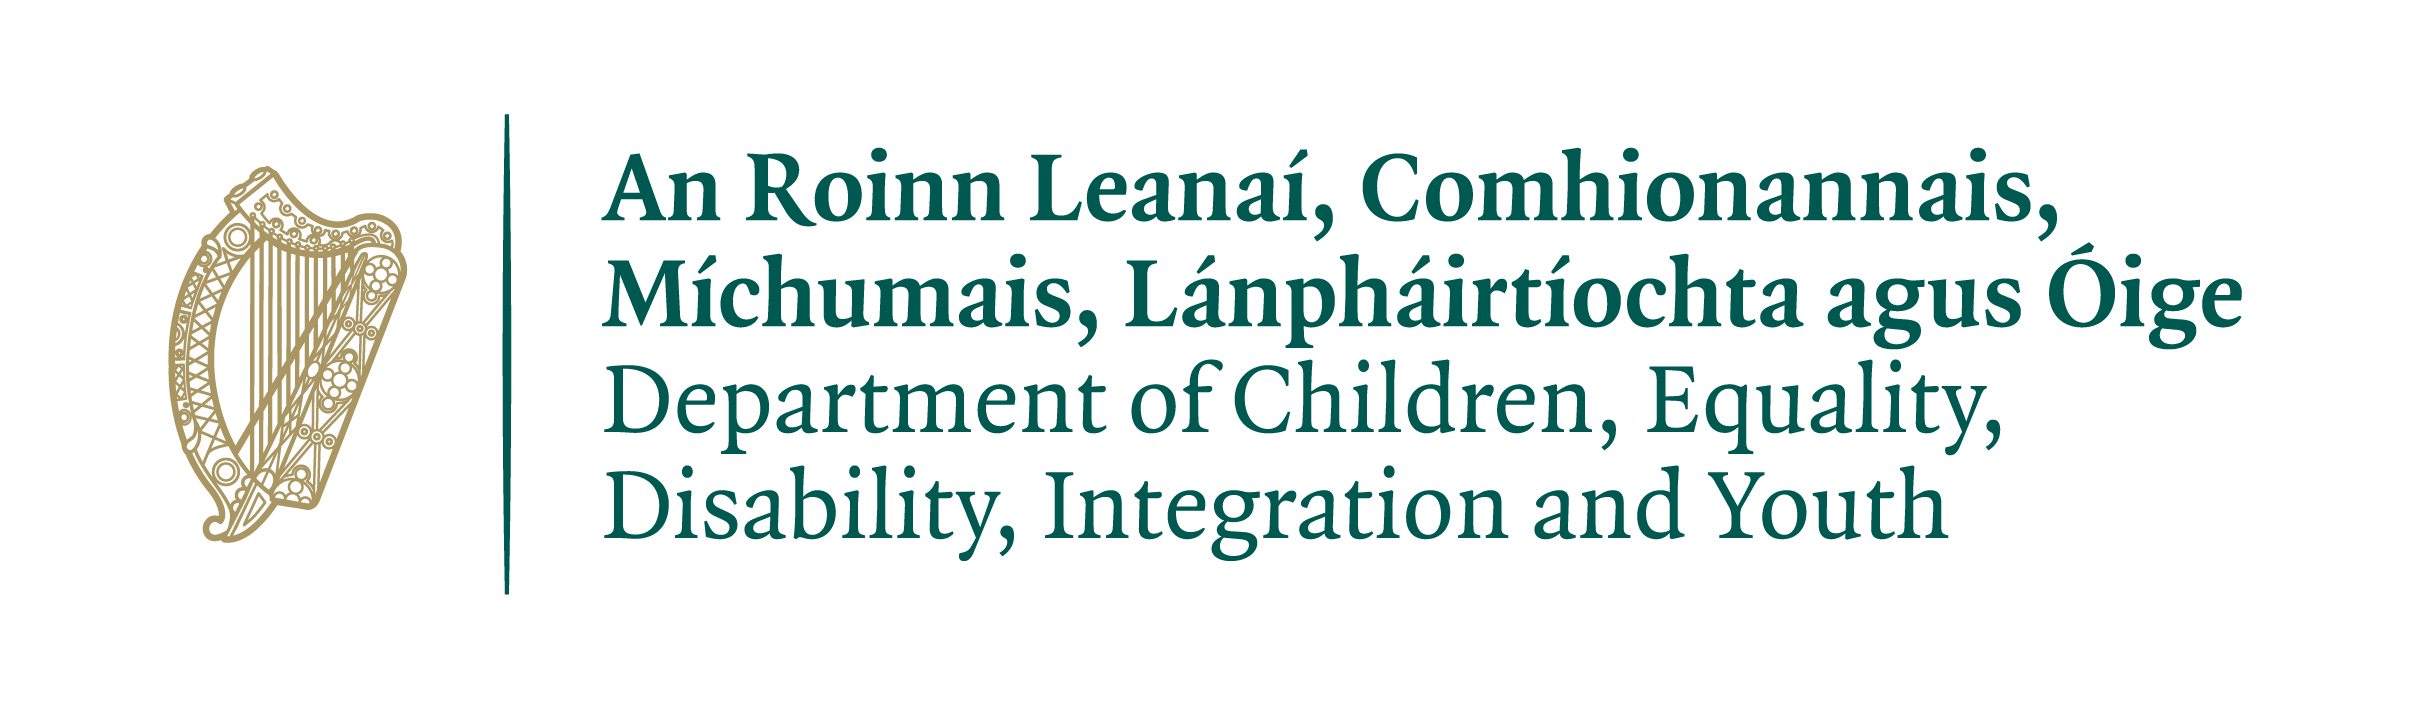 department-of-children-equality-disability-integration-and-youth